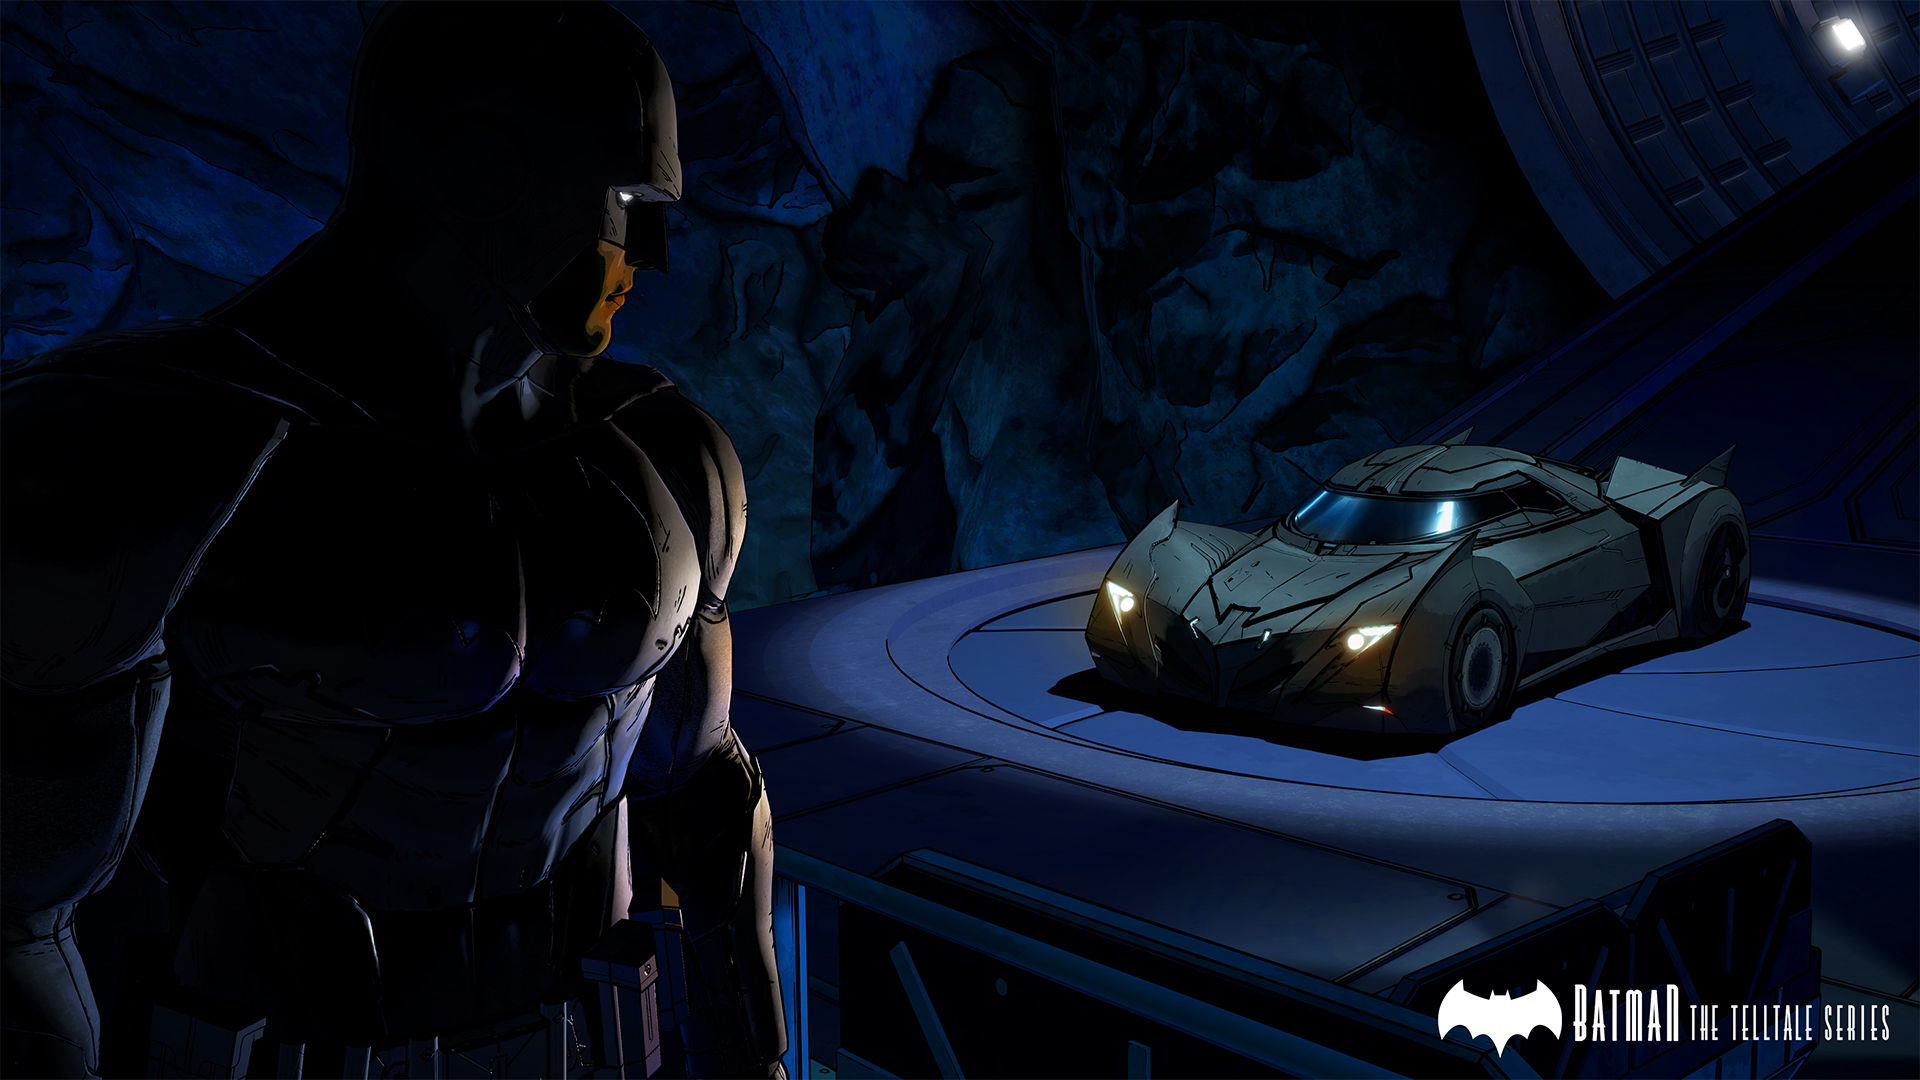 Batman: The Telltale Series Batman-Telltale-Batcave-Batmobile